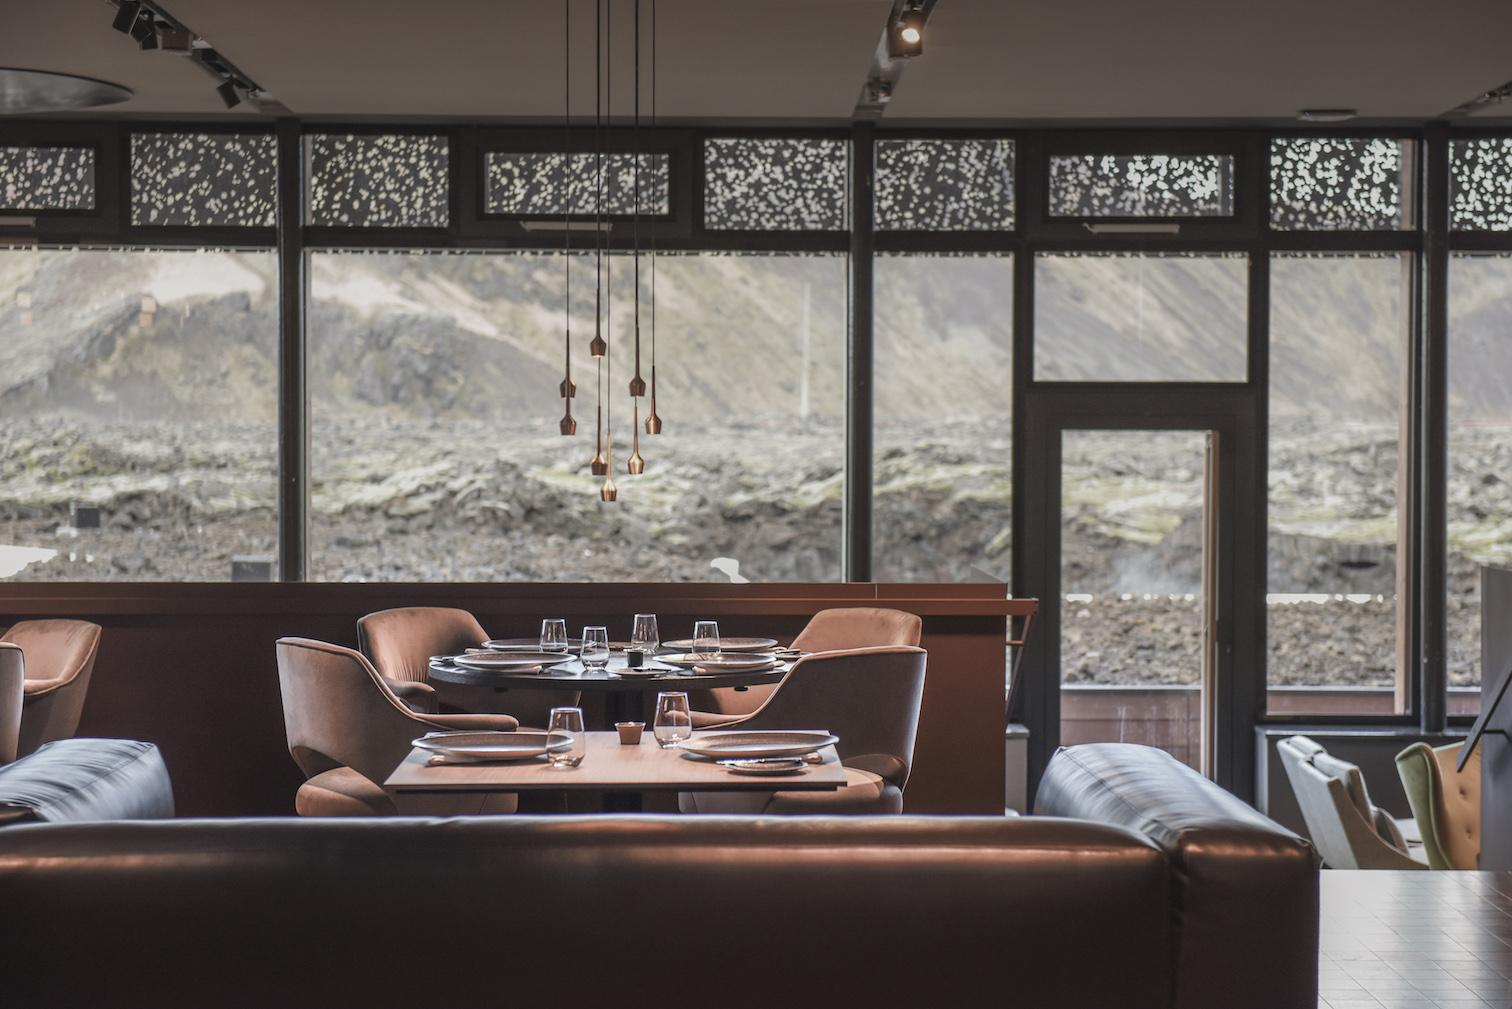 The upscale Moss Restaurant highlights seasonal and regional ingredients